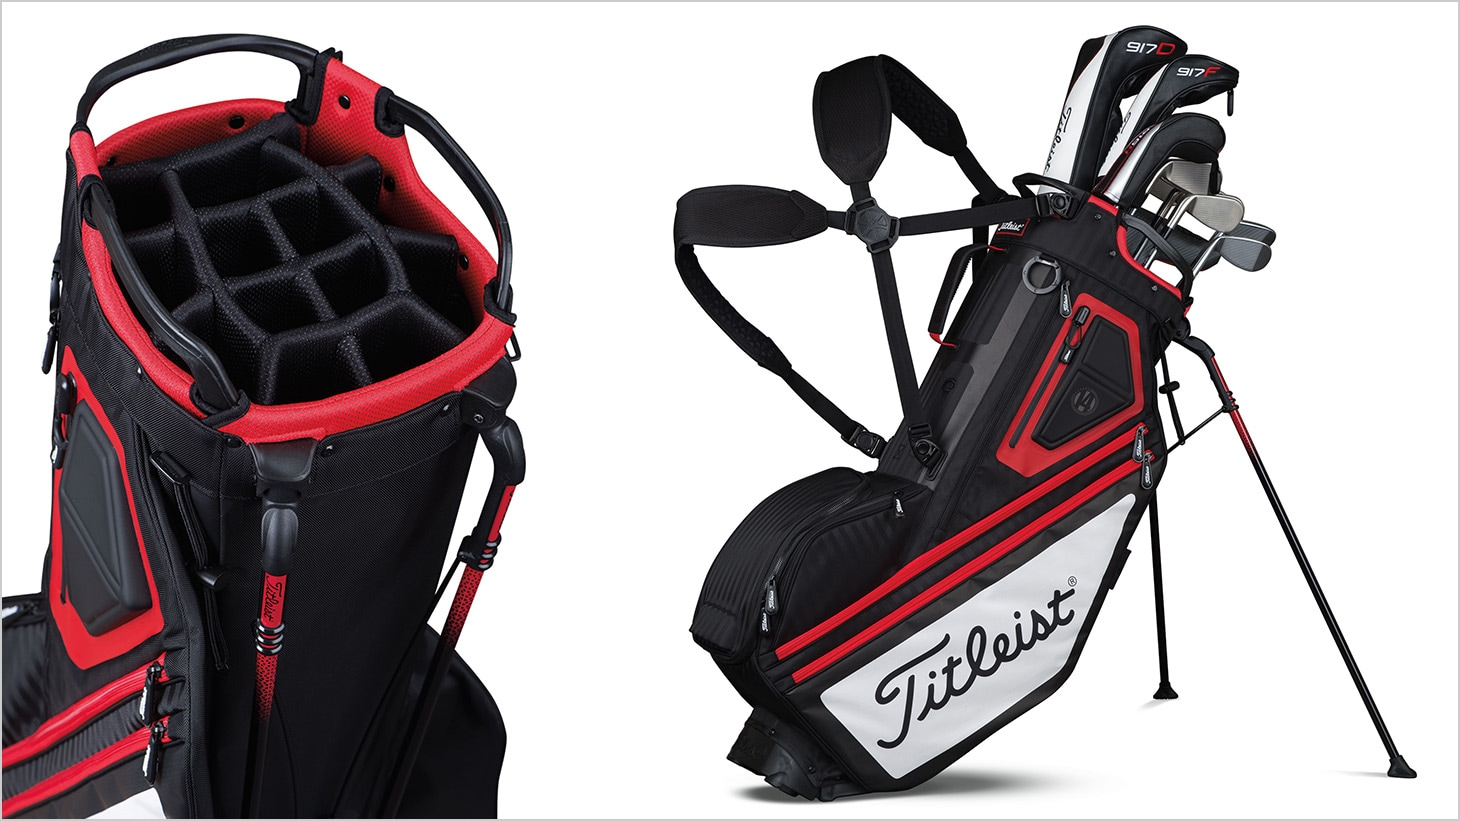 Titleist Lightweight Stand Bag 2015 moreover Tour Domination Callaway Drivers Have Won 7 Weeks In A Row further Paige Spiranac Former Sdsu Golfer Aspiring Lpga Tour Pro Next On Callaway Live further Mizuno Golf Travel Bags further Bridgestone Golf Cart Bag. on golf cart bag stand